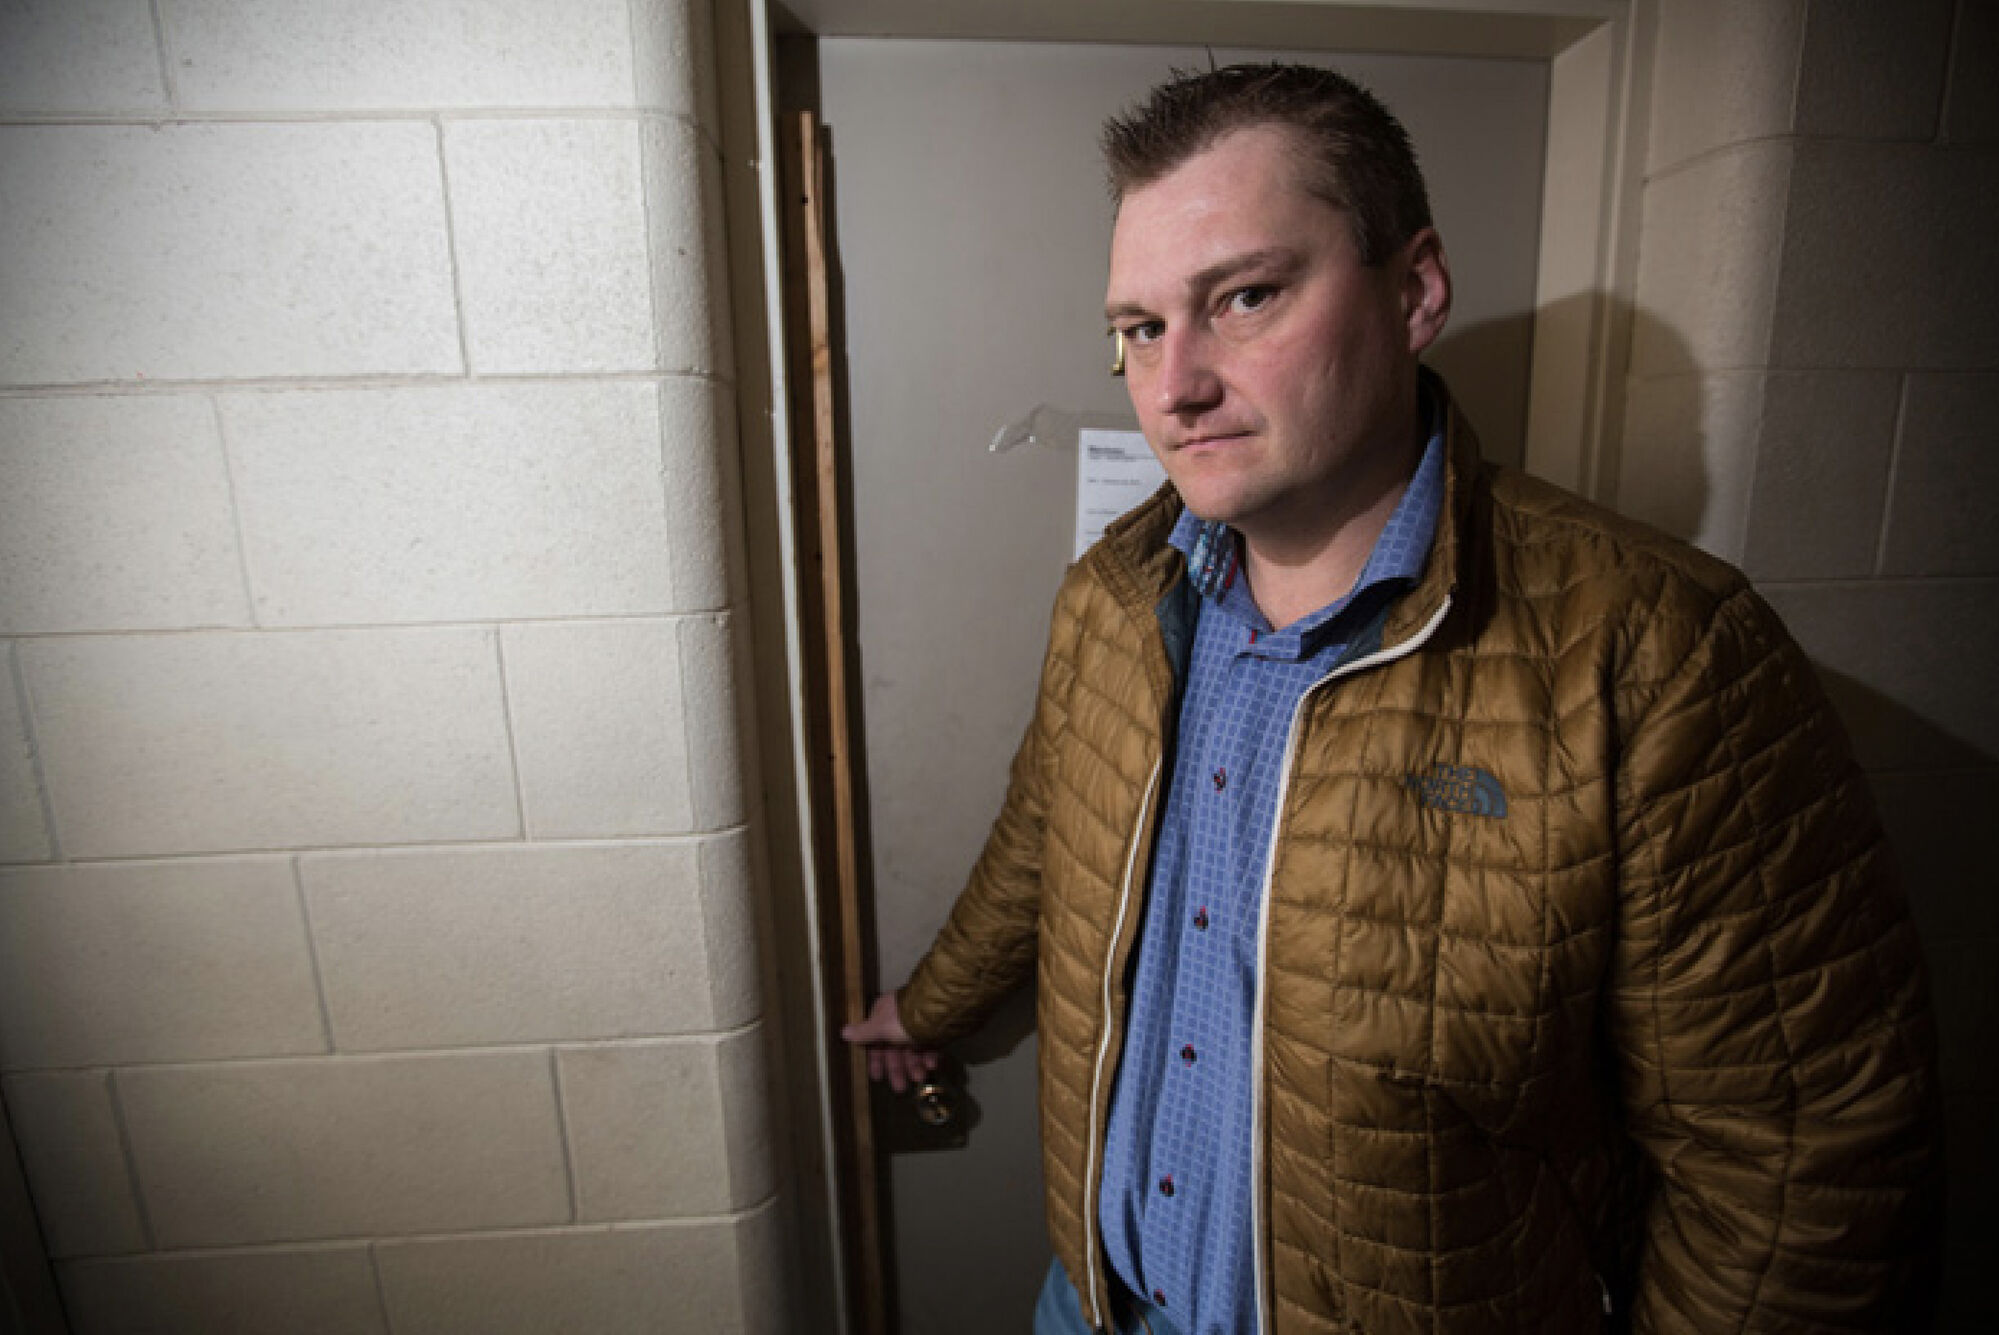 Vionell Holdings Partnership CEO Jason Roblin shows a door the company was forced to screw shut after repeated break-ins from a former tenant Thursday. (Chelsea Kemp/The Brandon Sun)